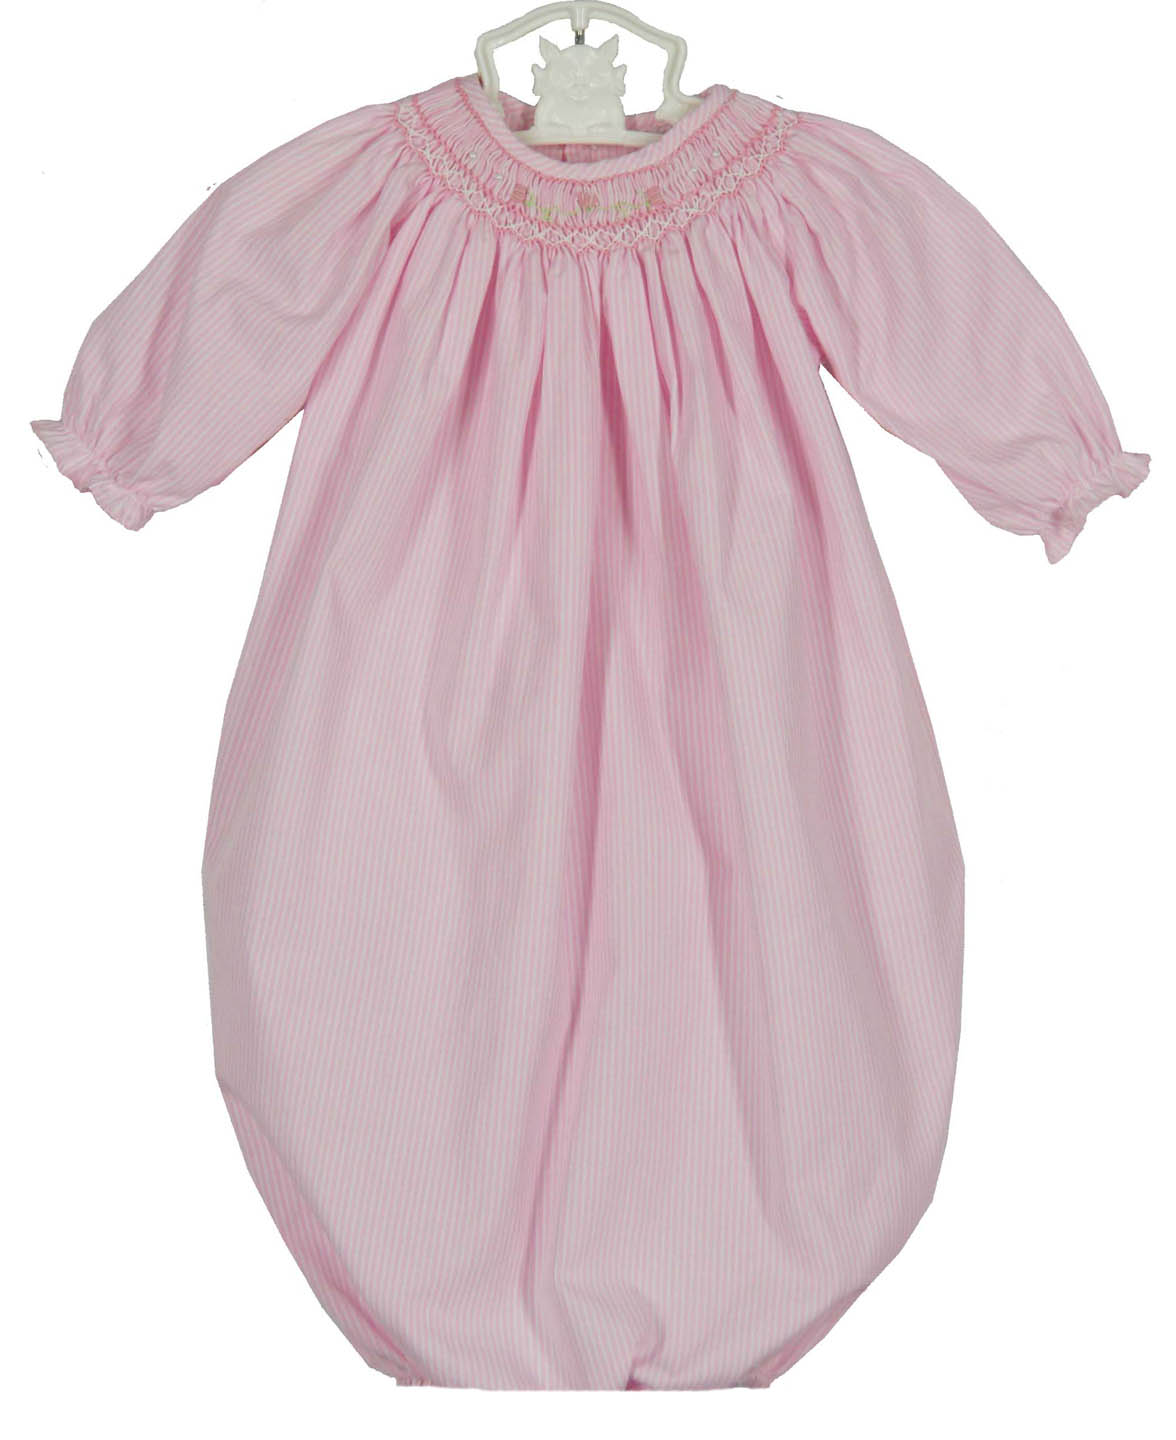 Petit Ami Pink Smocked Gown And Bonnetpink Smocked